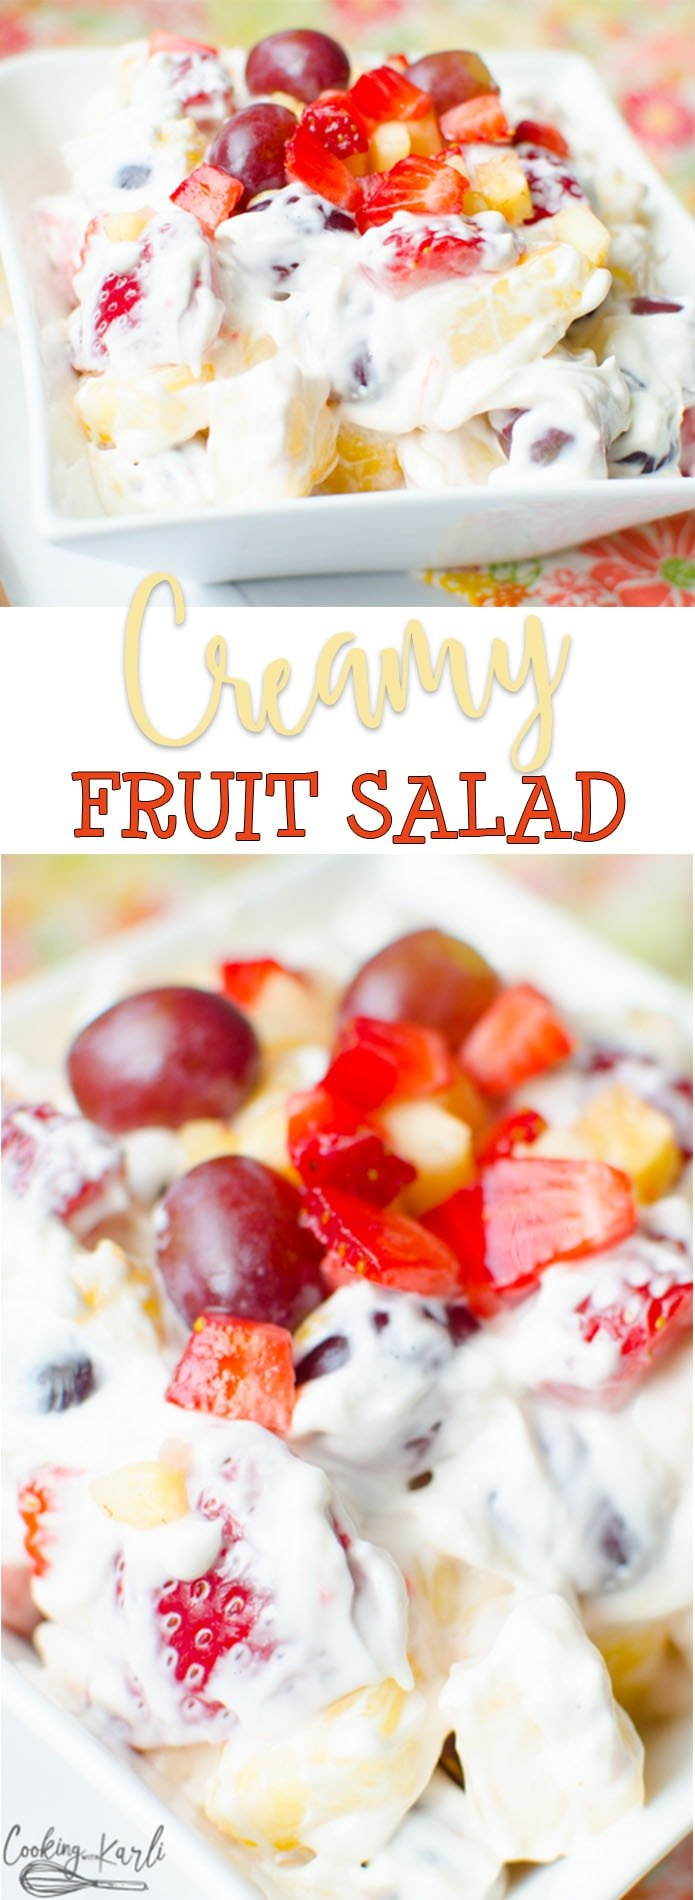 Creamy Fruit Salad is simple, fast and easy. All you need is a variety fruit, Cream Cheese and Marshmallow Cream. Strawberries, Pineapple, Grapes, Apples.. you name it! All of the delicious colorful fruit brought together with Cream Cheese and Marshmallow Cream. |Cooking with Karli| #fruitsalad #salad #fruit #strawberries #pineapple #grapes #side #potluck